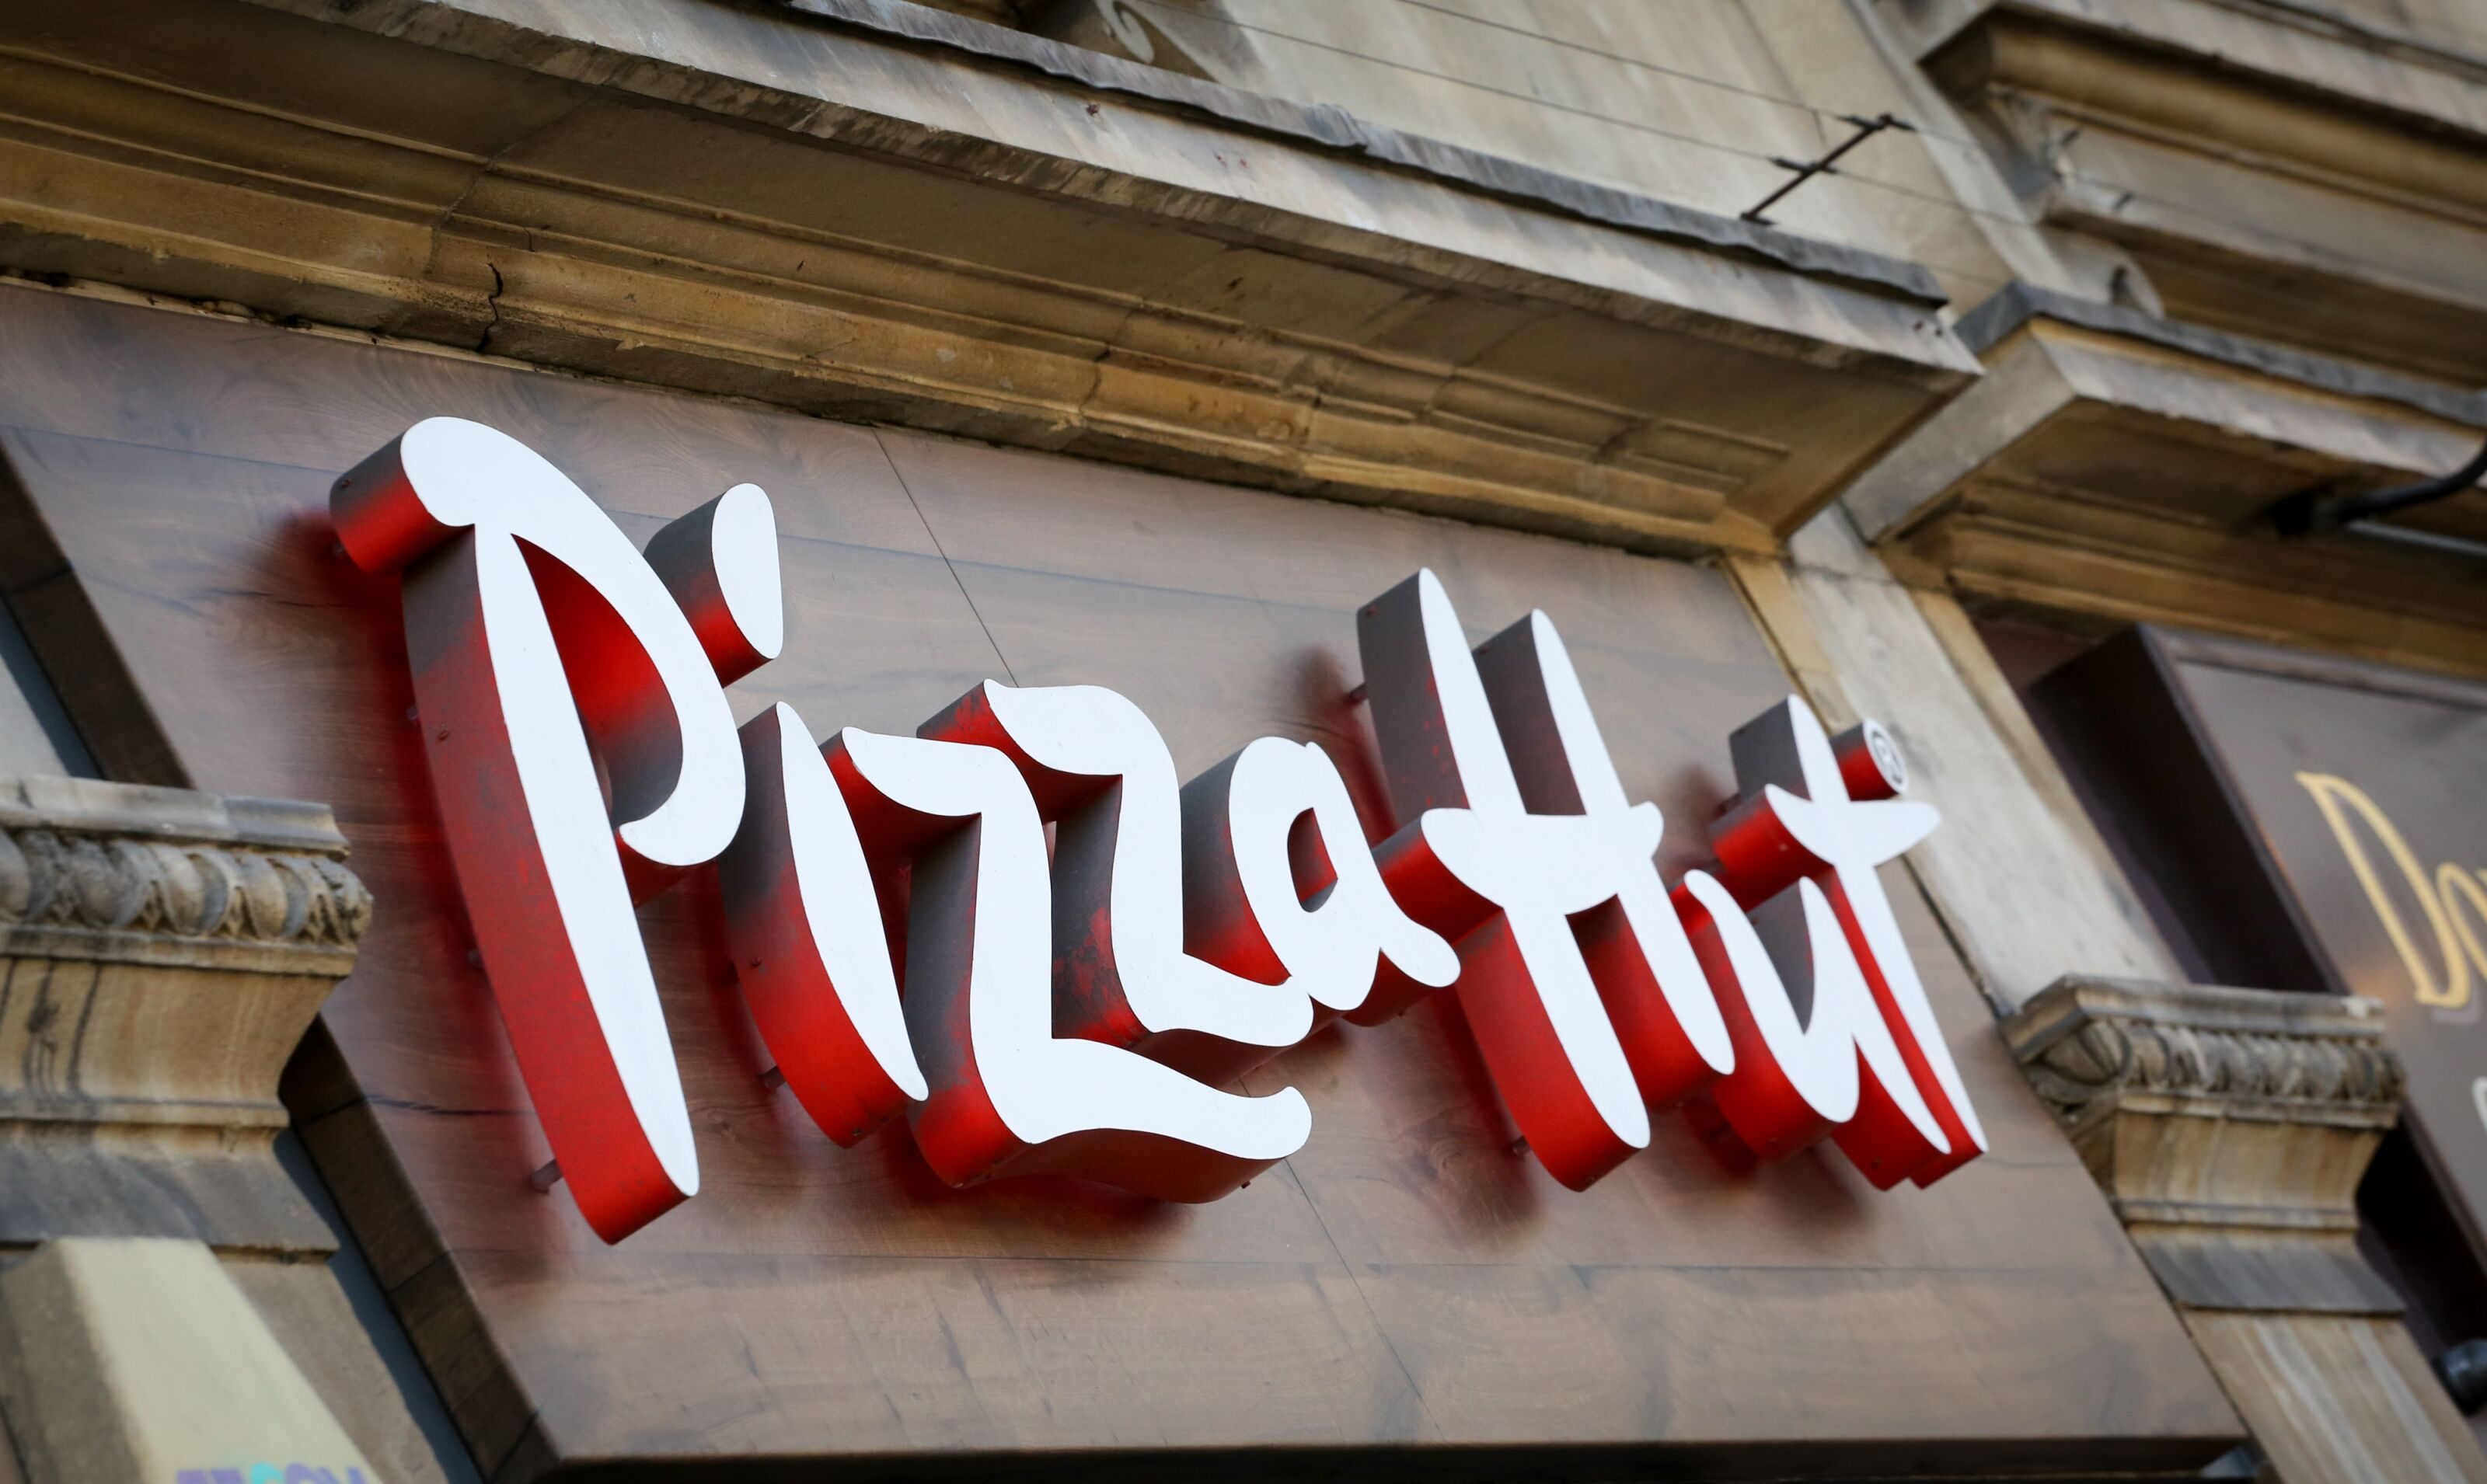 Is Pizza Hut going out of business? Closing 500 dine-in restaurant